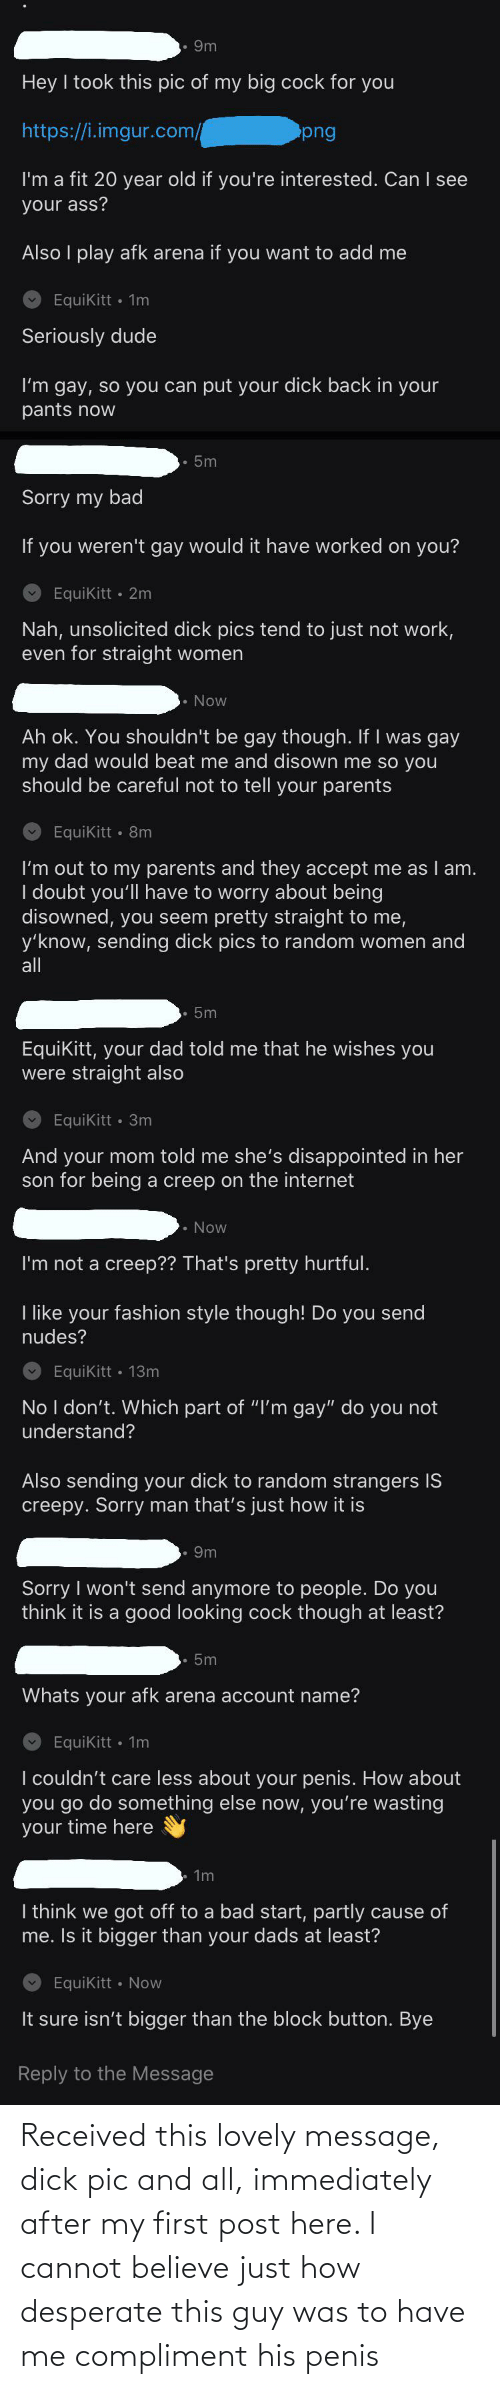 Lovely Message: Received this lovely message, dick pic and all, immediately after my first post here. I cannot believe just how desperate this guy was to have me compliment his penis